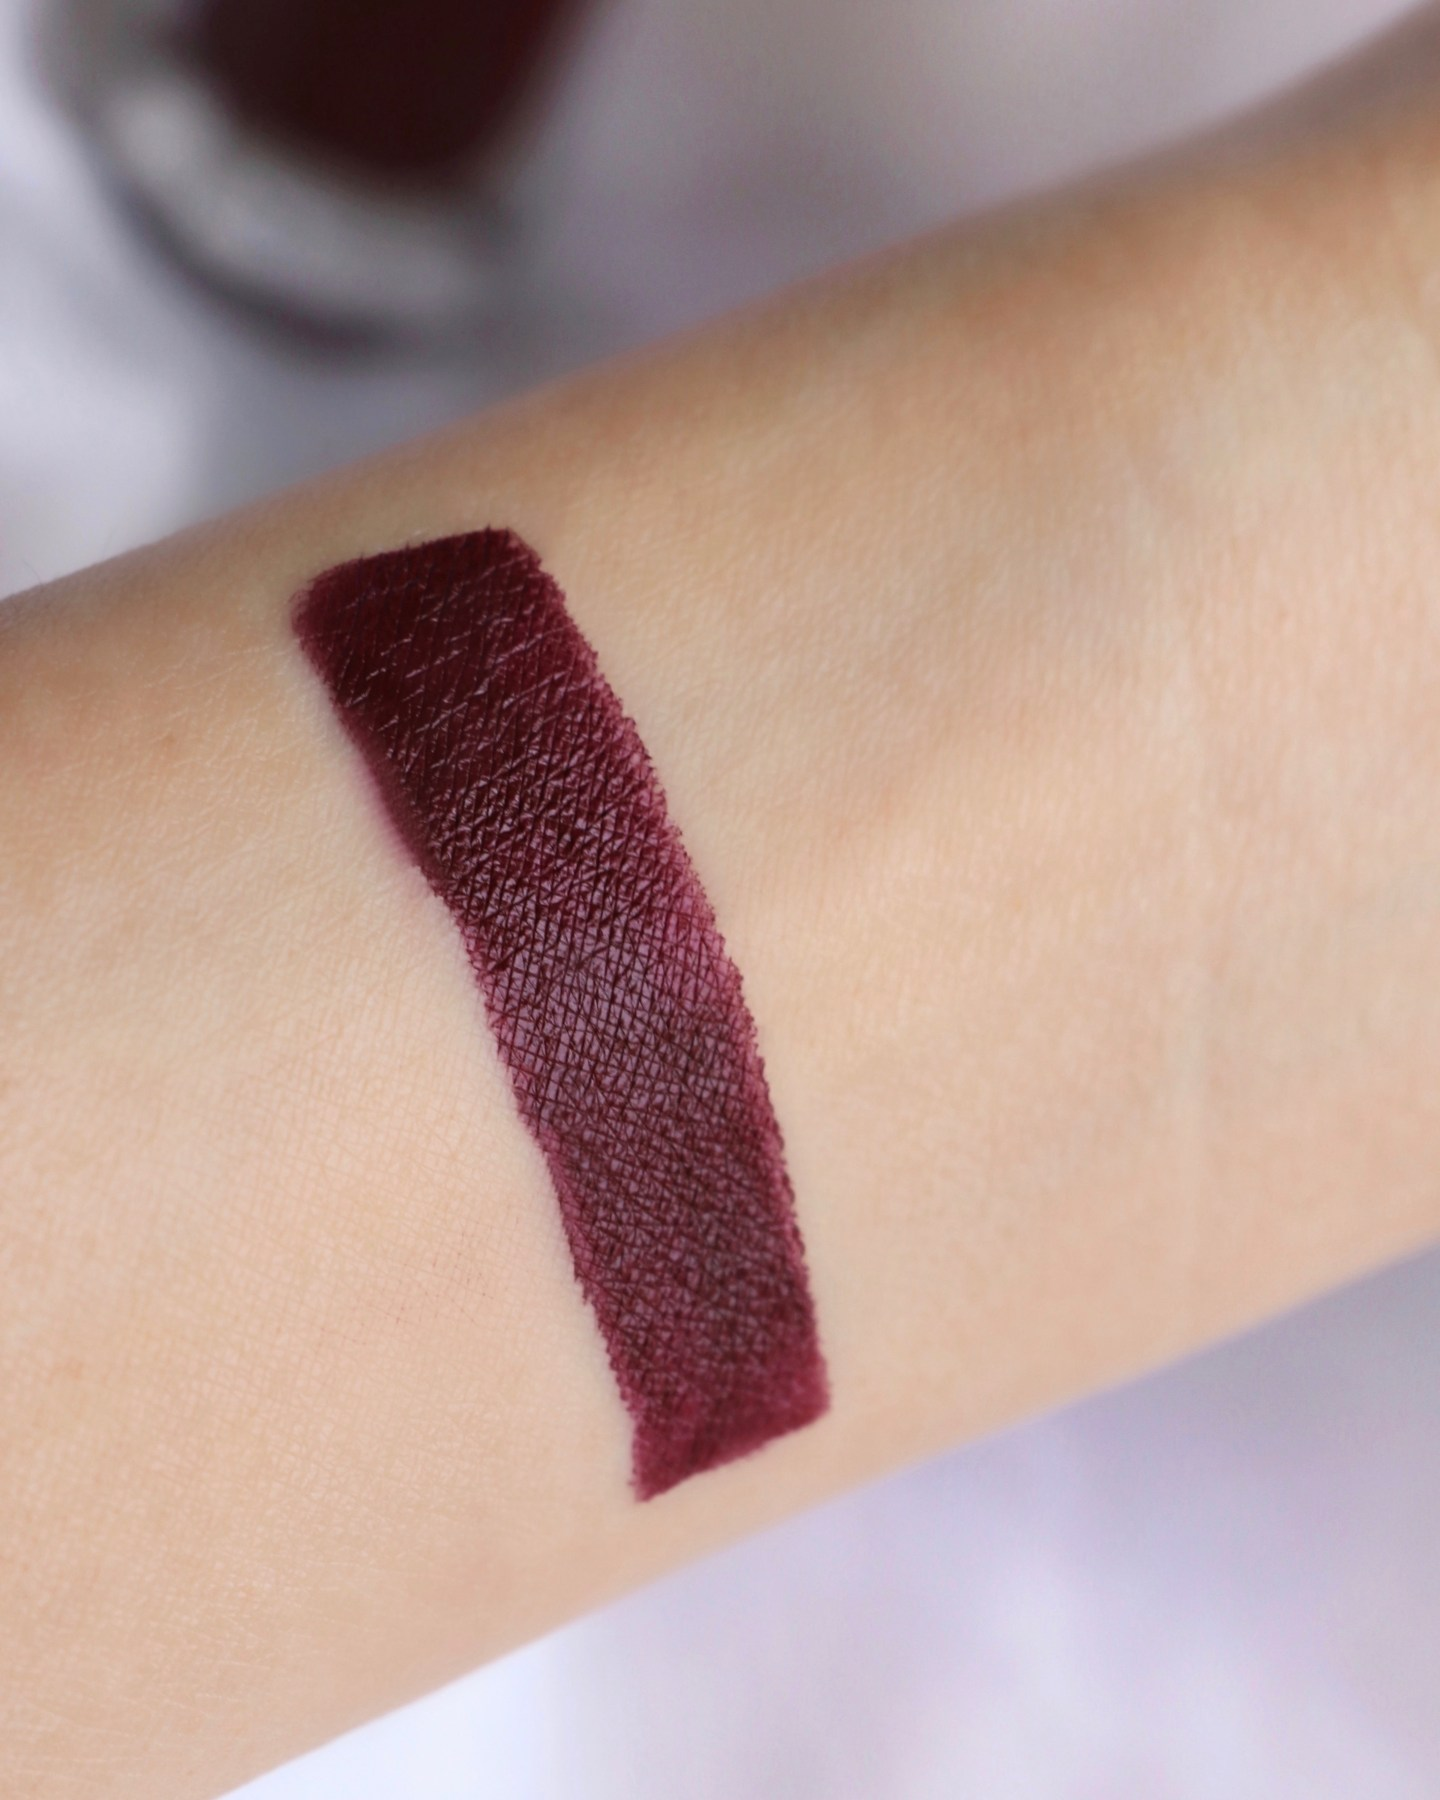 Fenty Beauty STUNNA LIP PAINT LONGWEAR FLUID LIP COLOR UNDERDWAWG Swatch